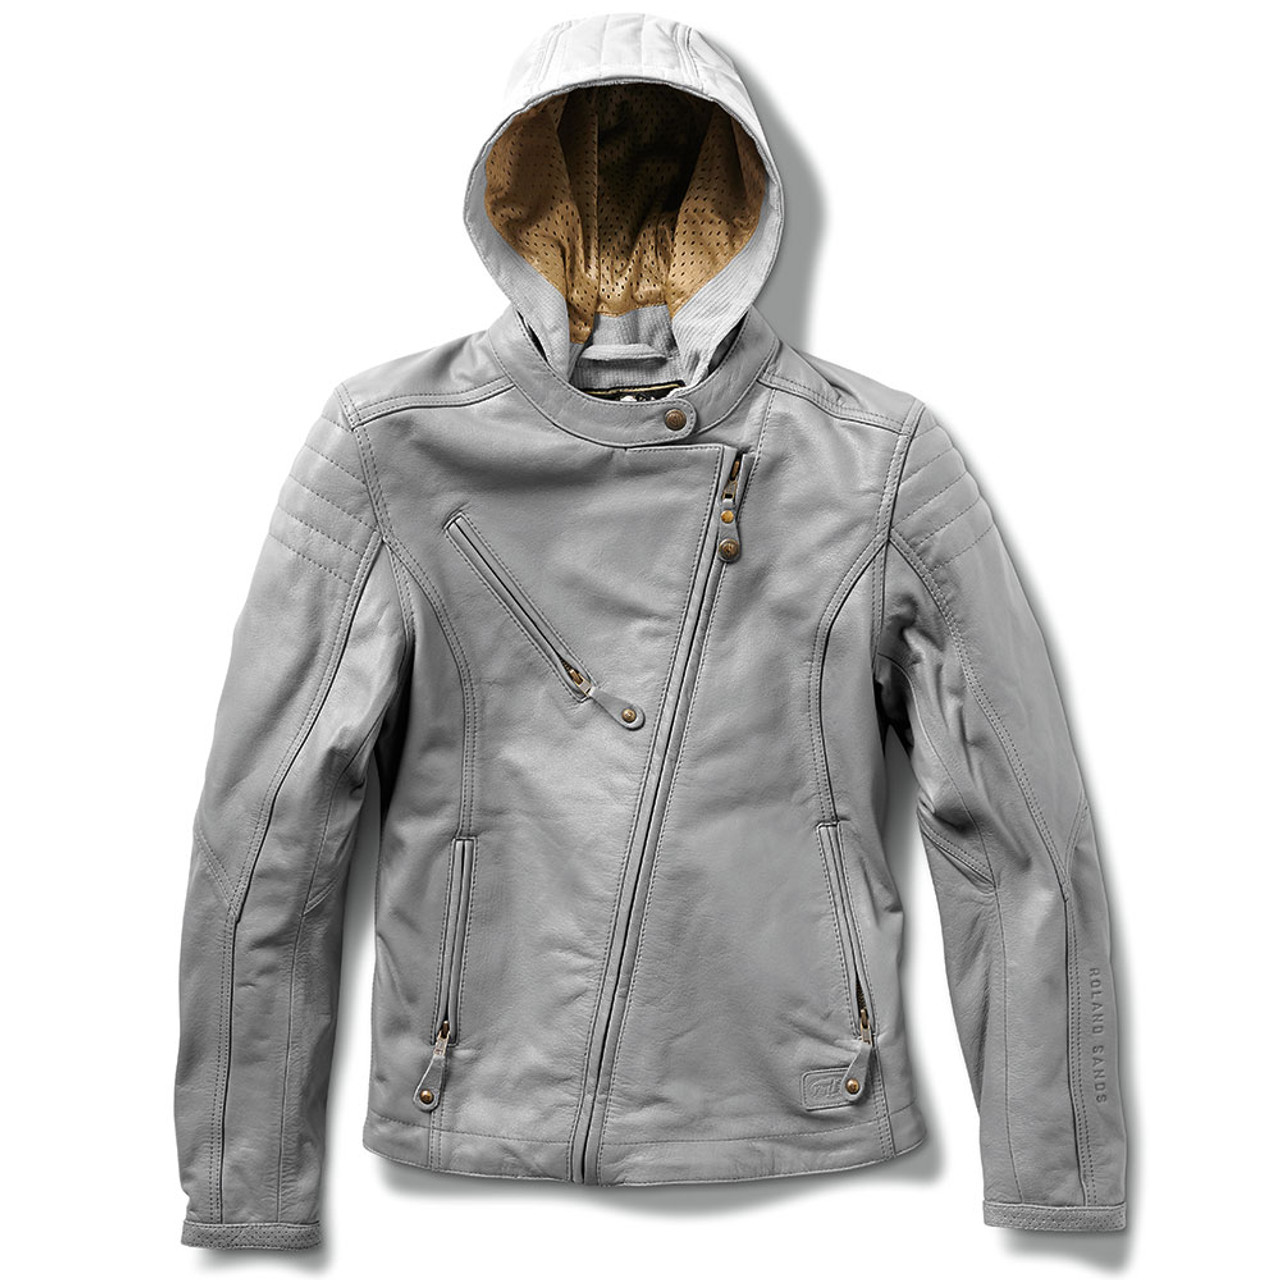 Pleasant Roland Sands Womens Mia Leather Jacket Grey Alphanode Cool Chair Designs And Ideas Alphanodeonline